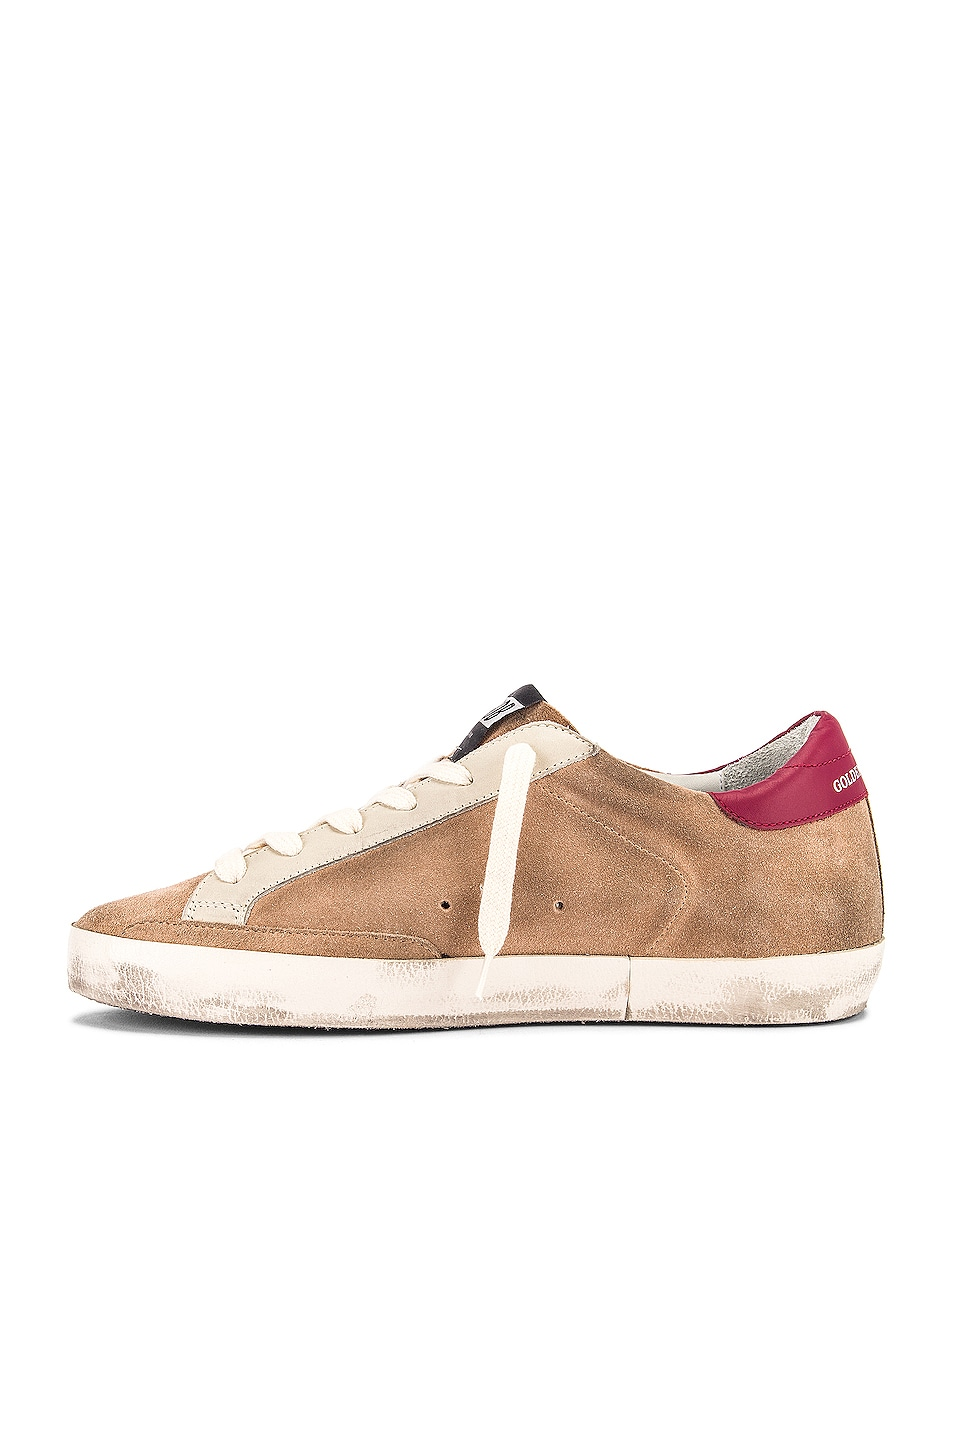 Image 5 of Golden Goose Superstar Sneaker in Desert Suede & Blue Glitter